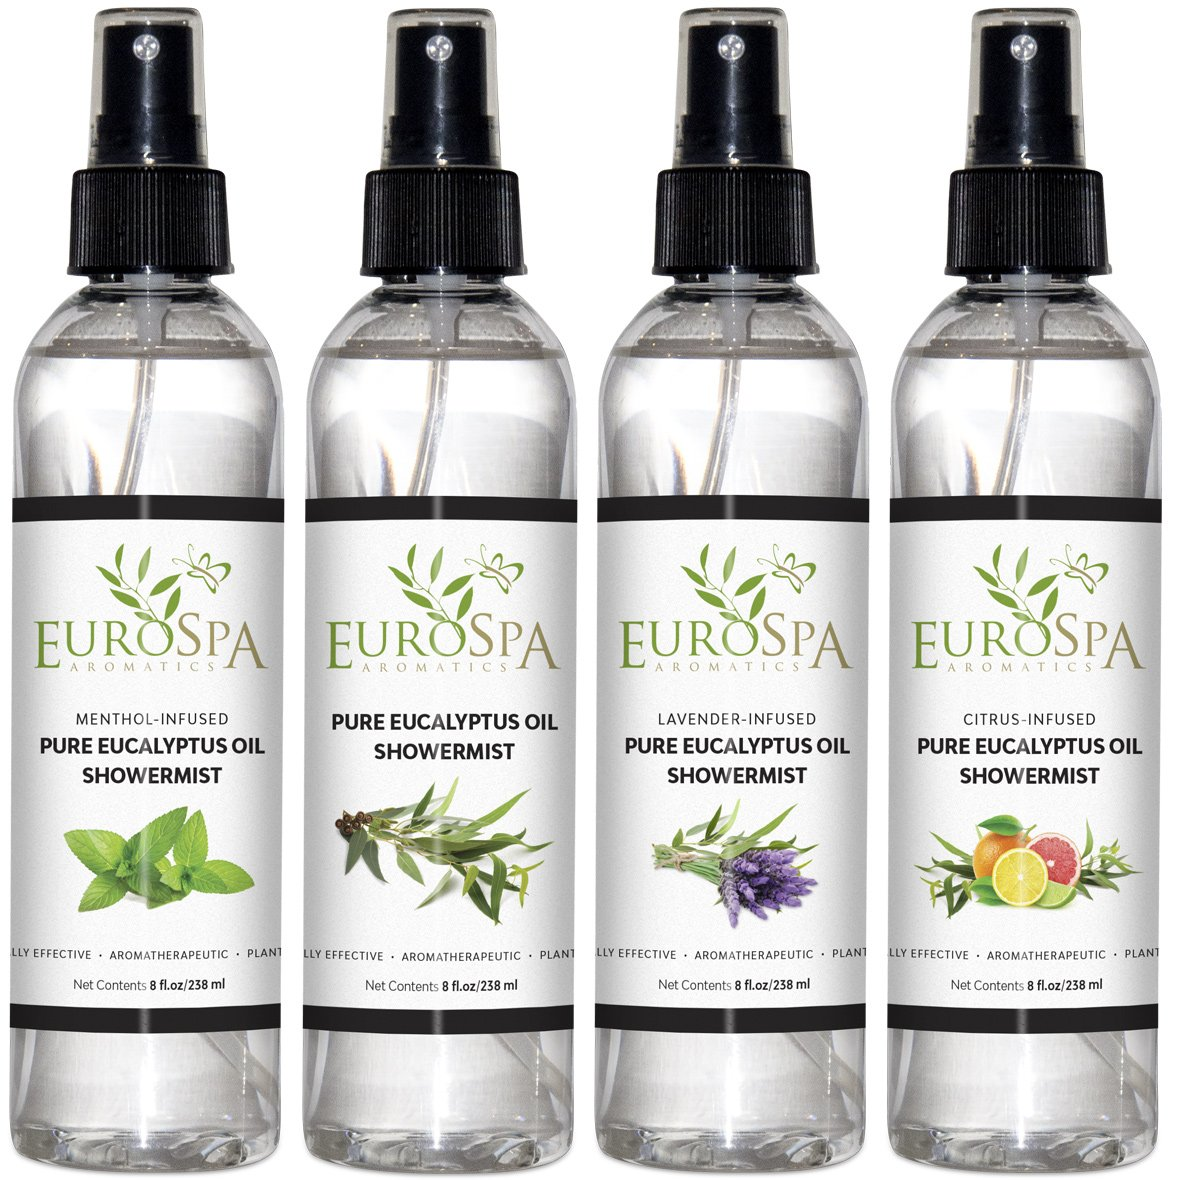 EuroSpa Aromatics Pure Eucalyptus Oil ShowerMist and Steam Room Spray, All-Natural Premium Aromatherapy Essential Oils - Variety 4 Pack - 8 oz Each by EuroSpa Aromatics